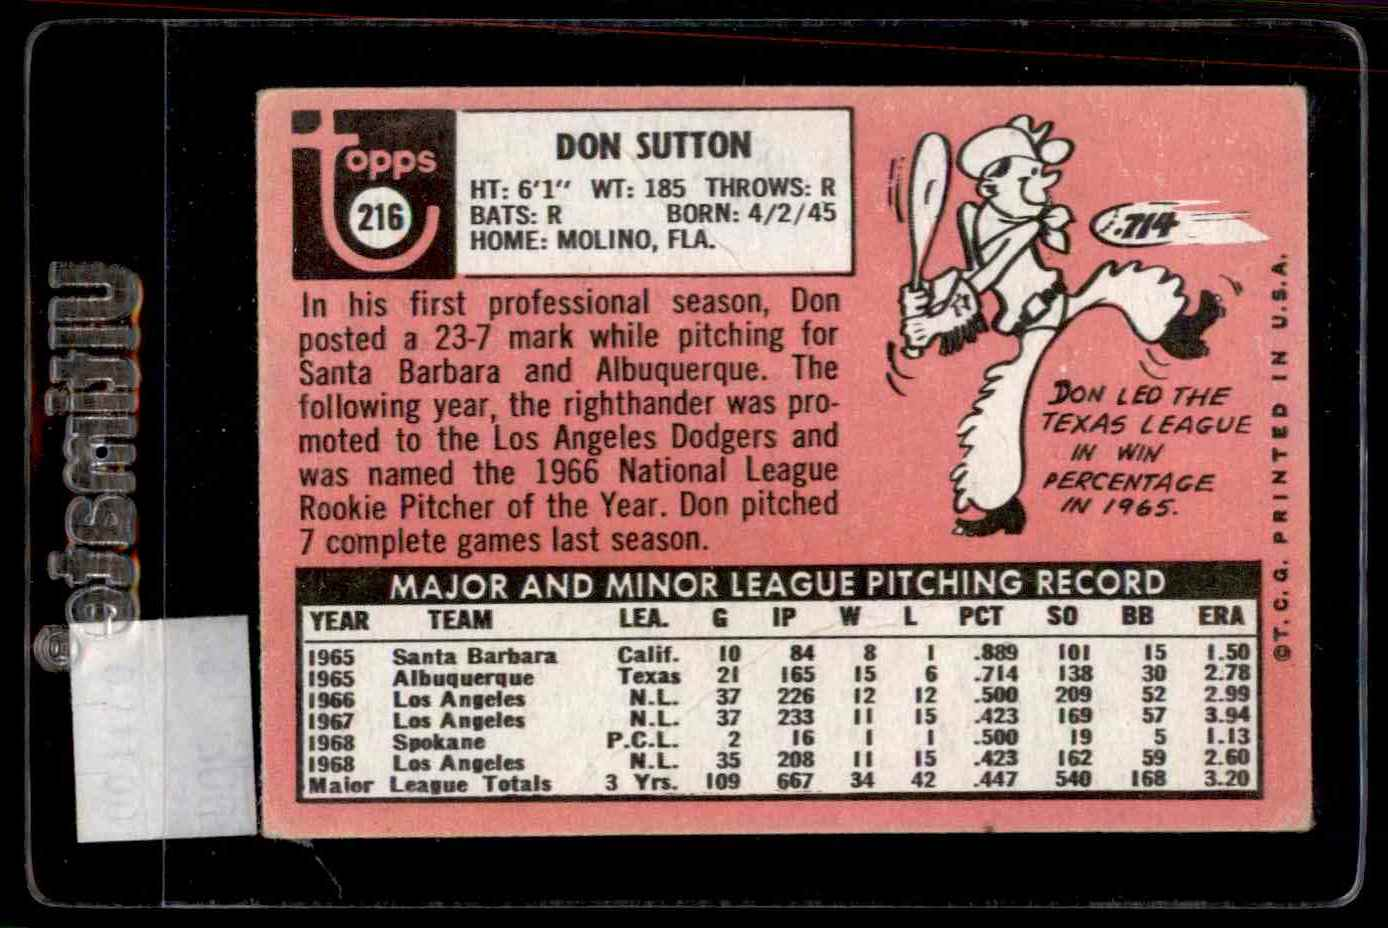 1969 Topps Don Sutton #216 card back image